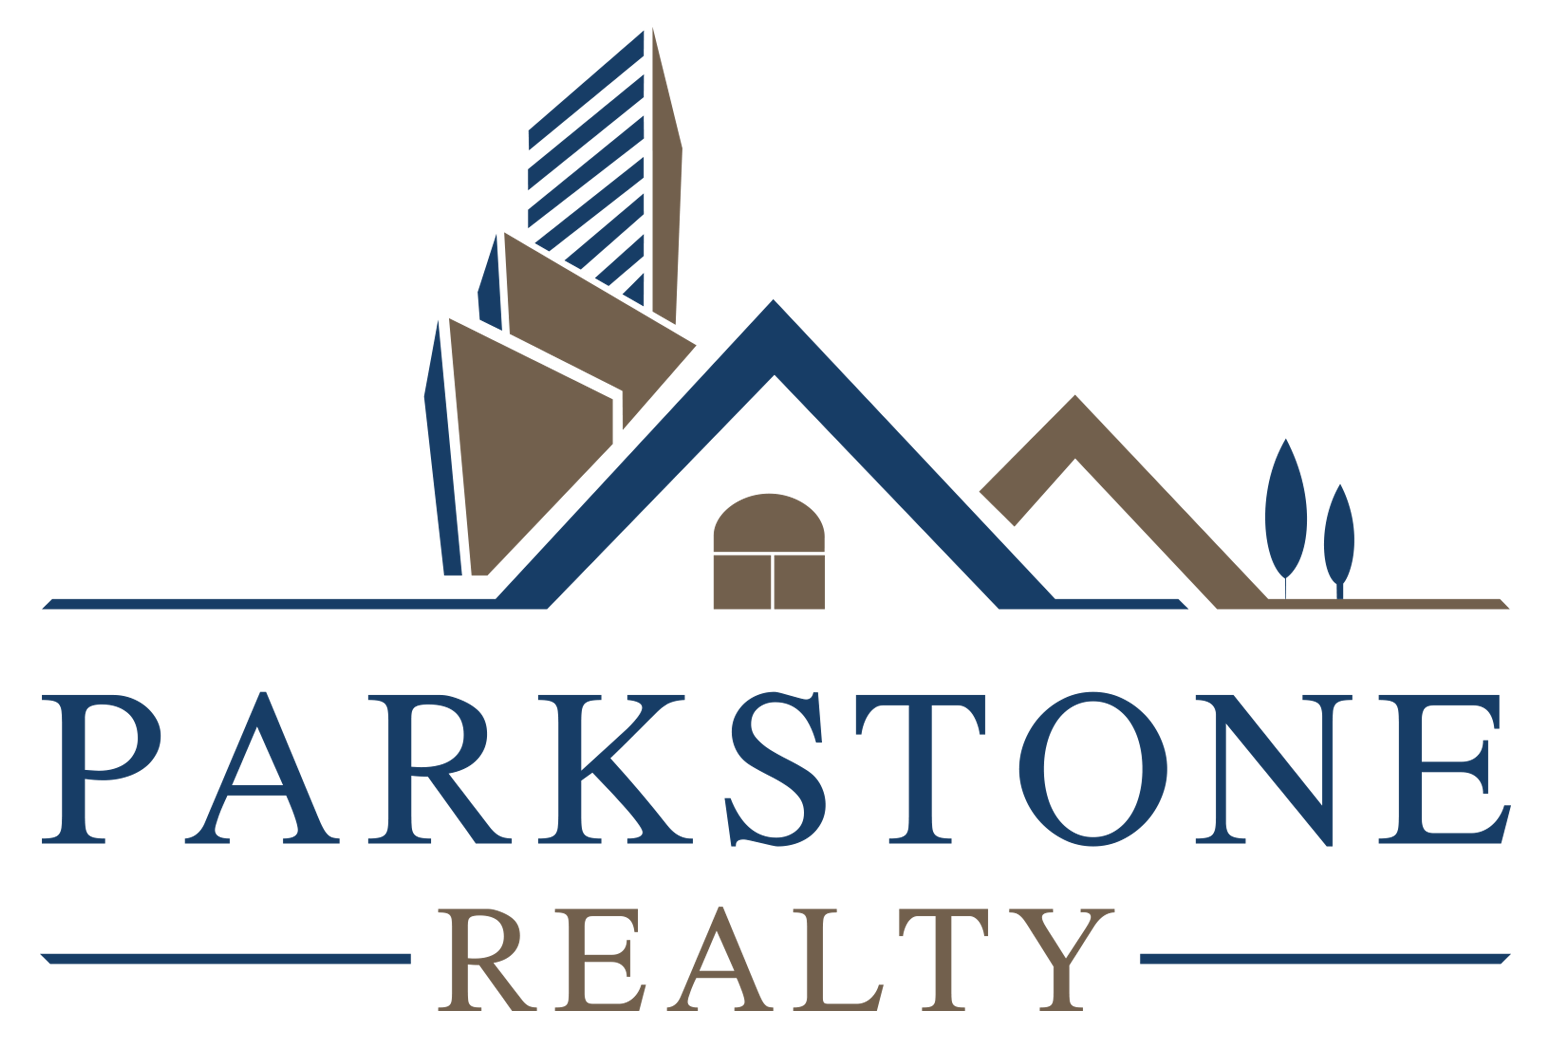 Parkstone Realty